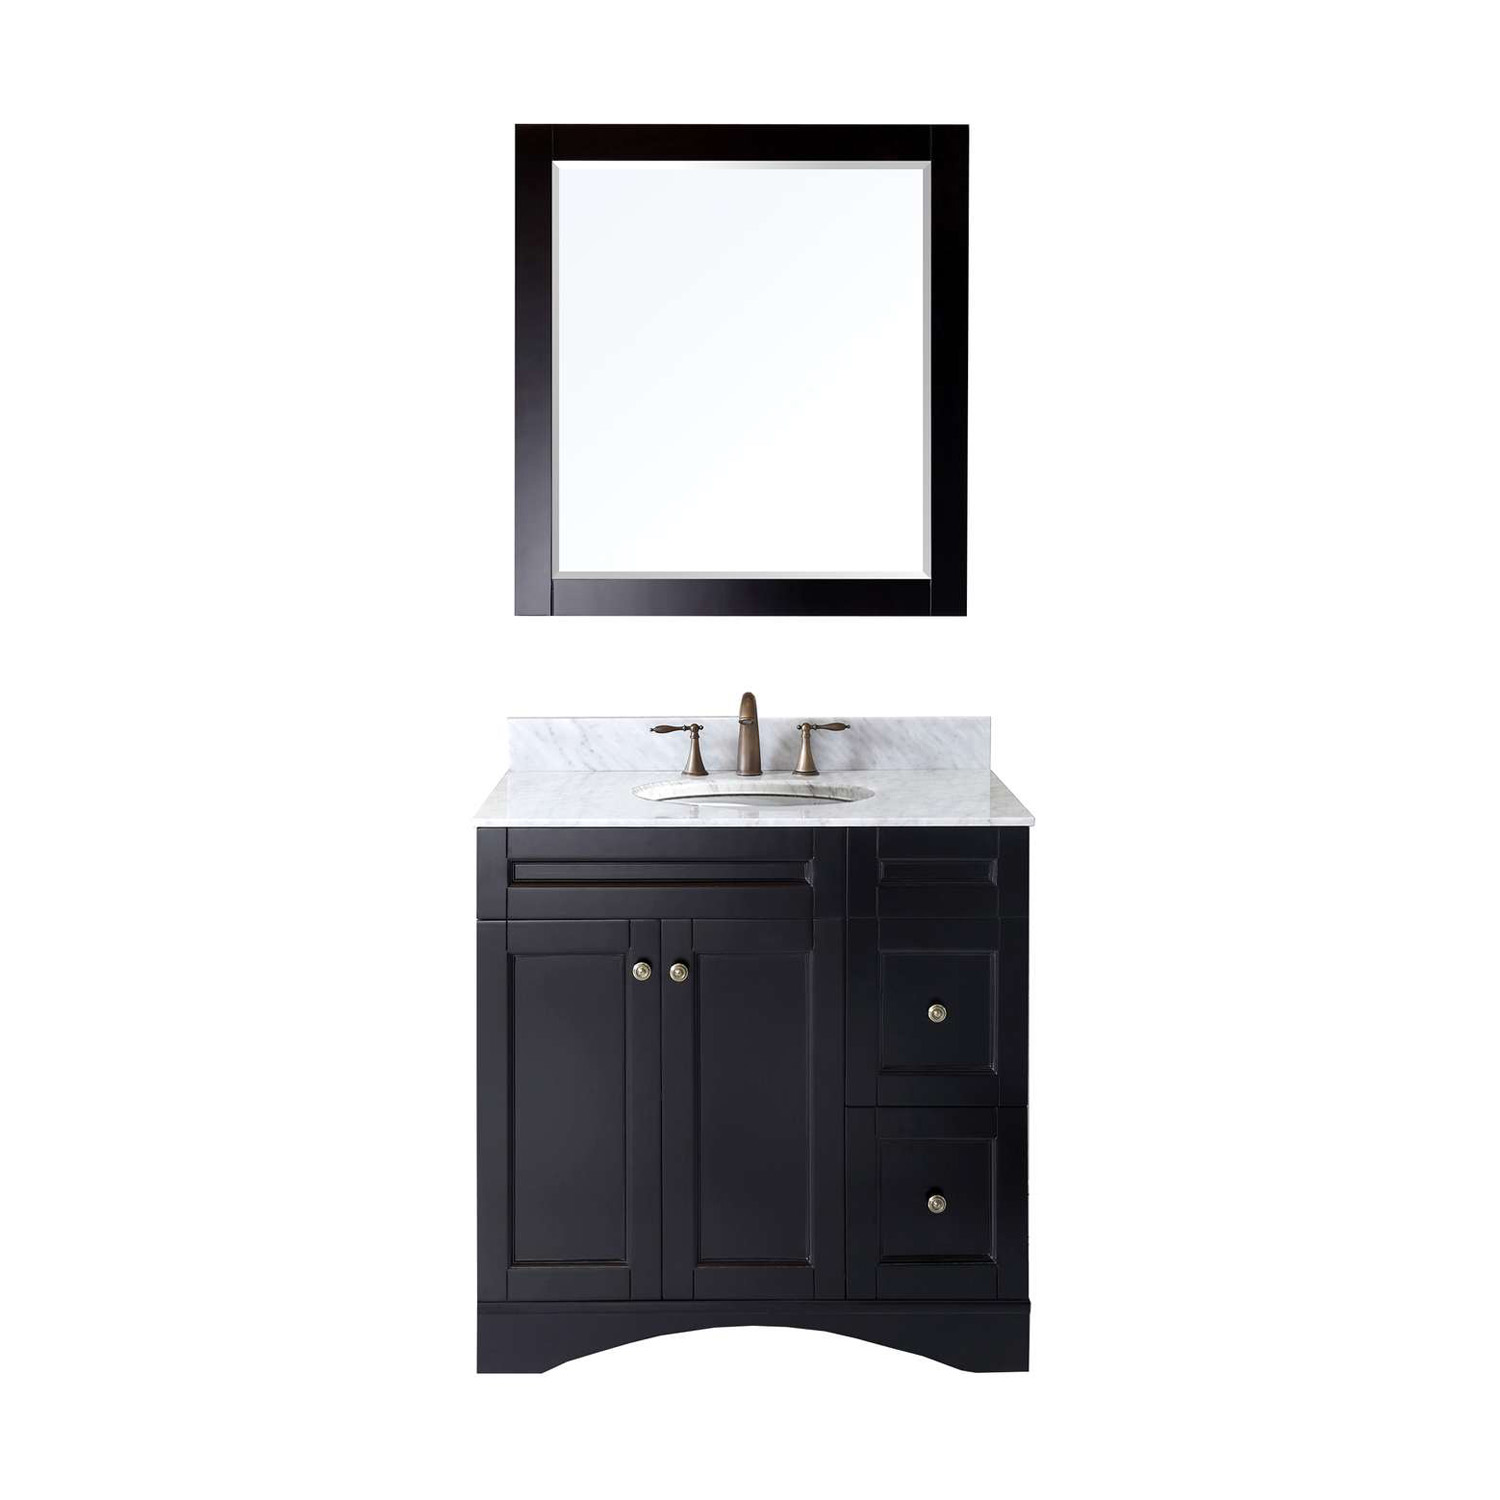 "36"" Single Bath Vanity in Espresso Finish with Top, Sink and Mirror Options"